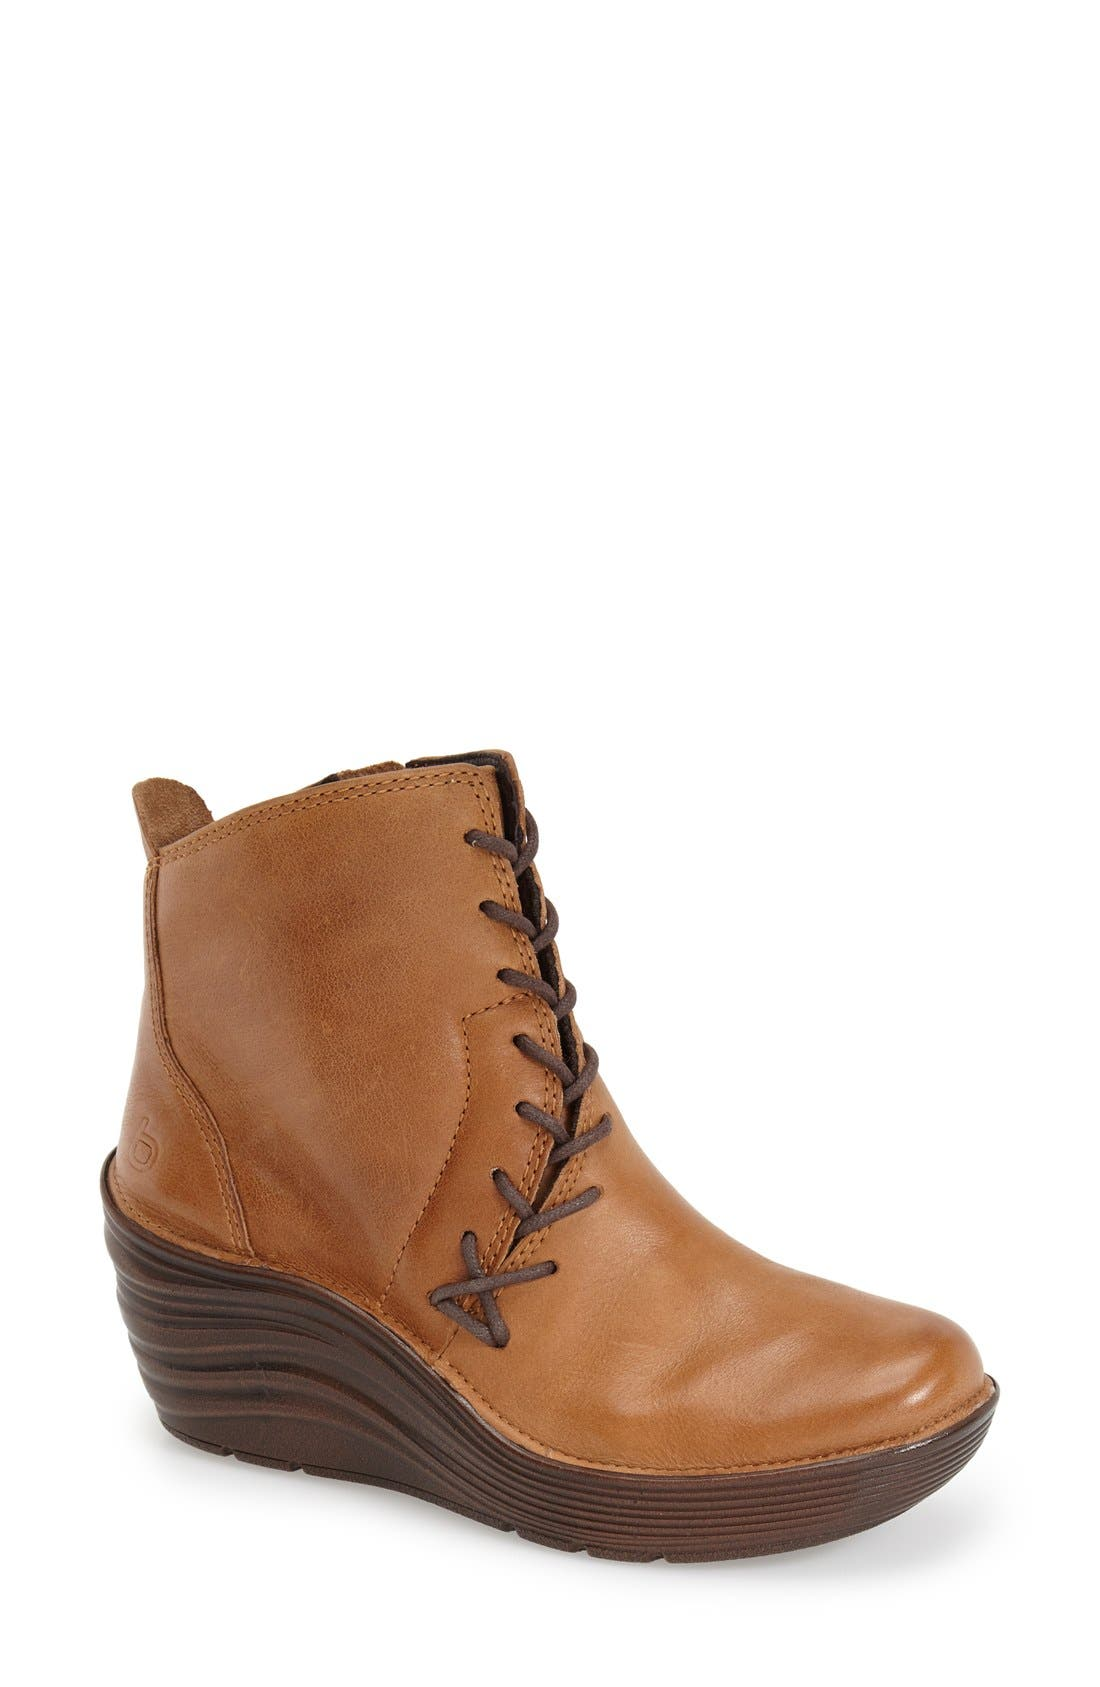 'Corset' Bootie,                         Main,                         color, CORK OILED LEATHER